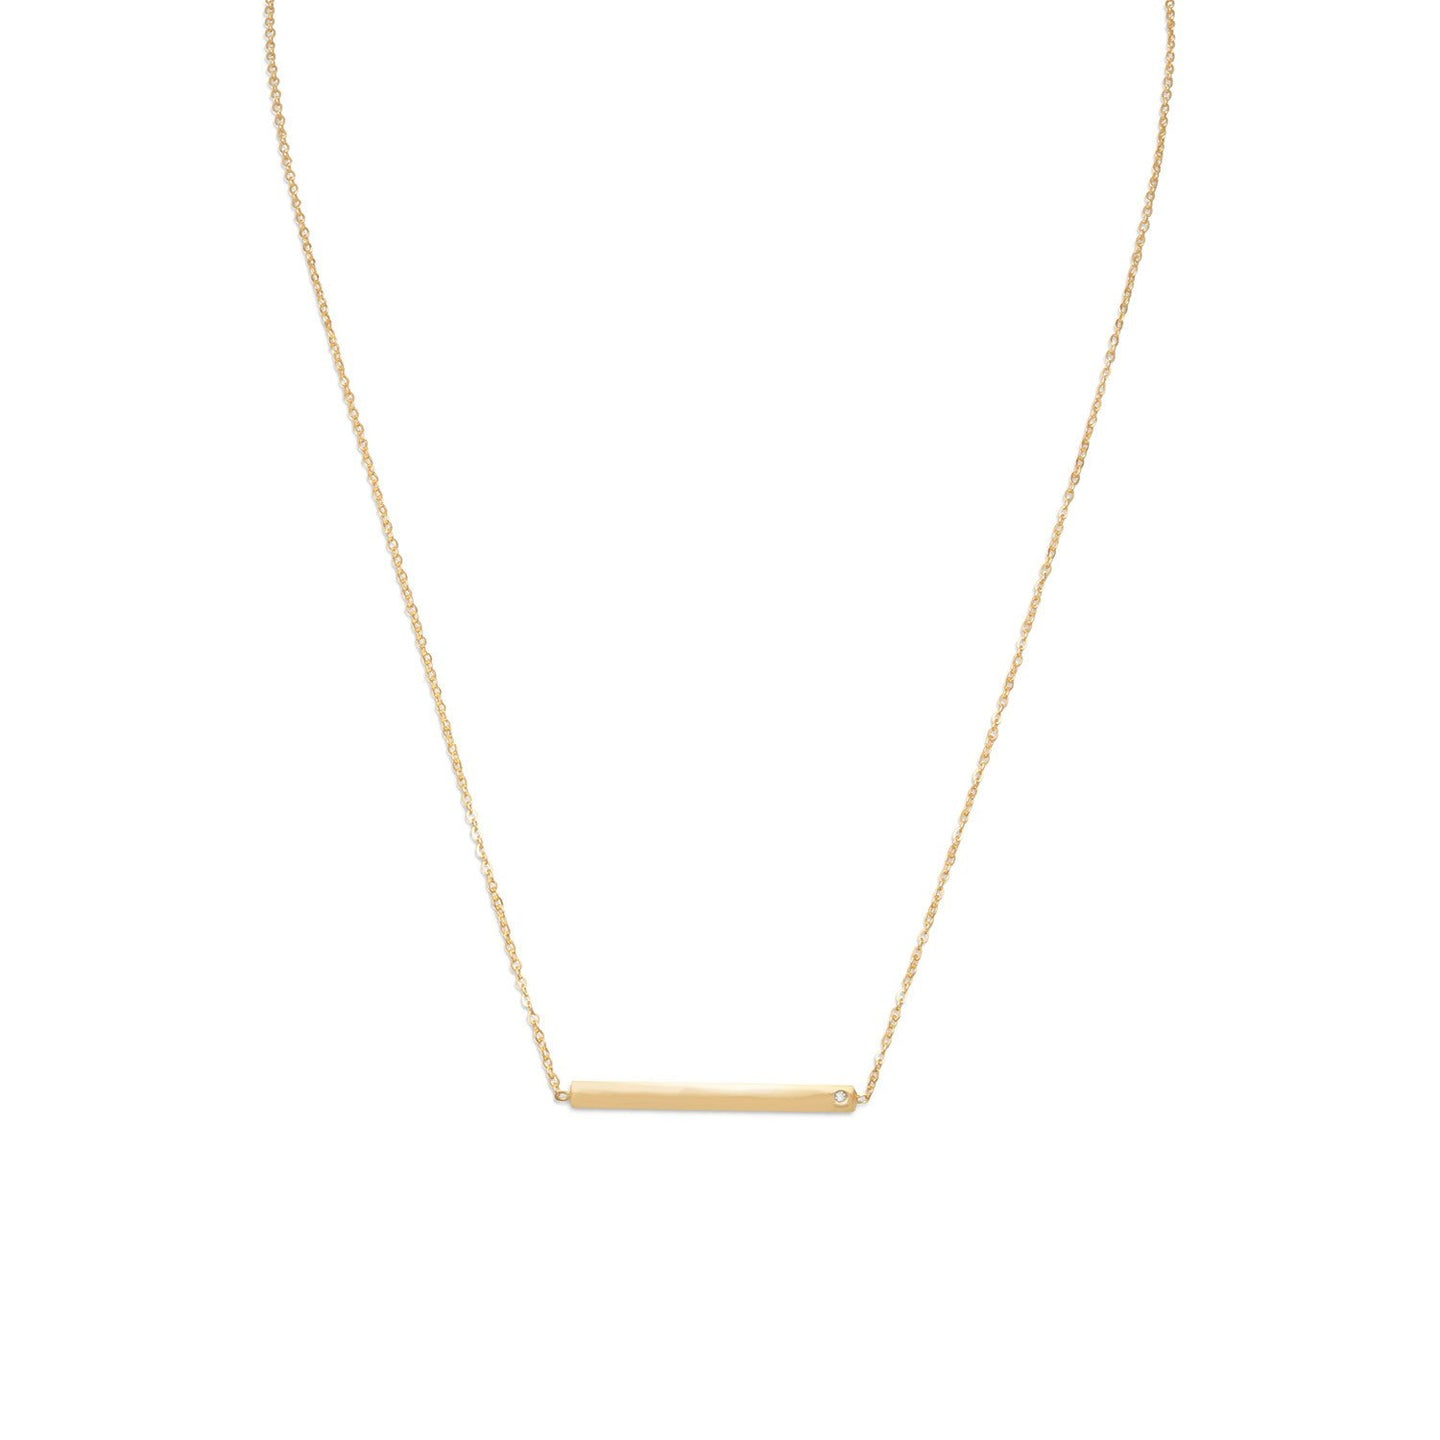 Gold Plated Bar Necklace with CZ - the-southern-magnolia-too